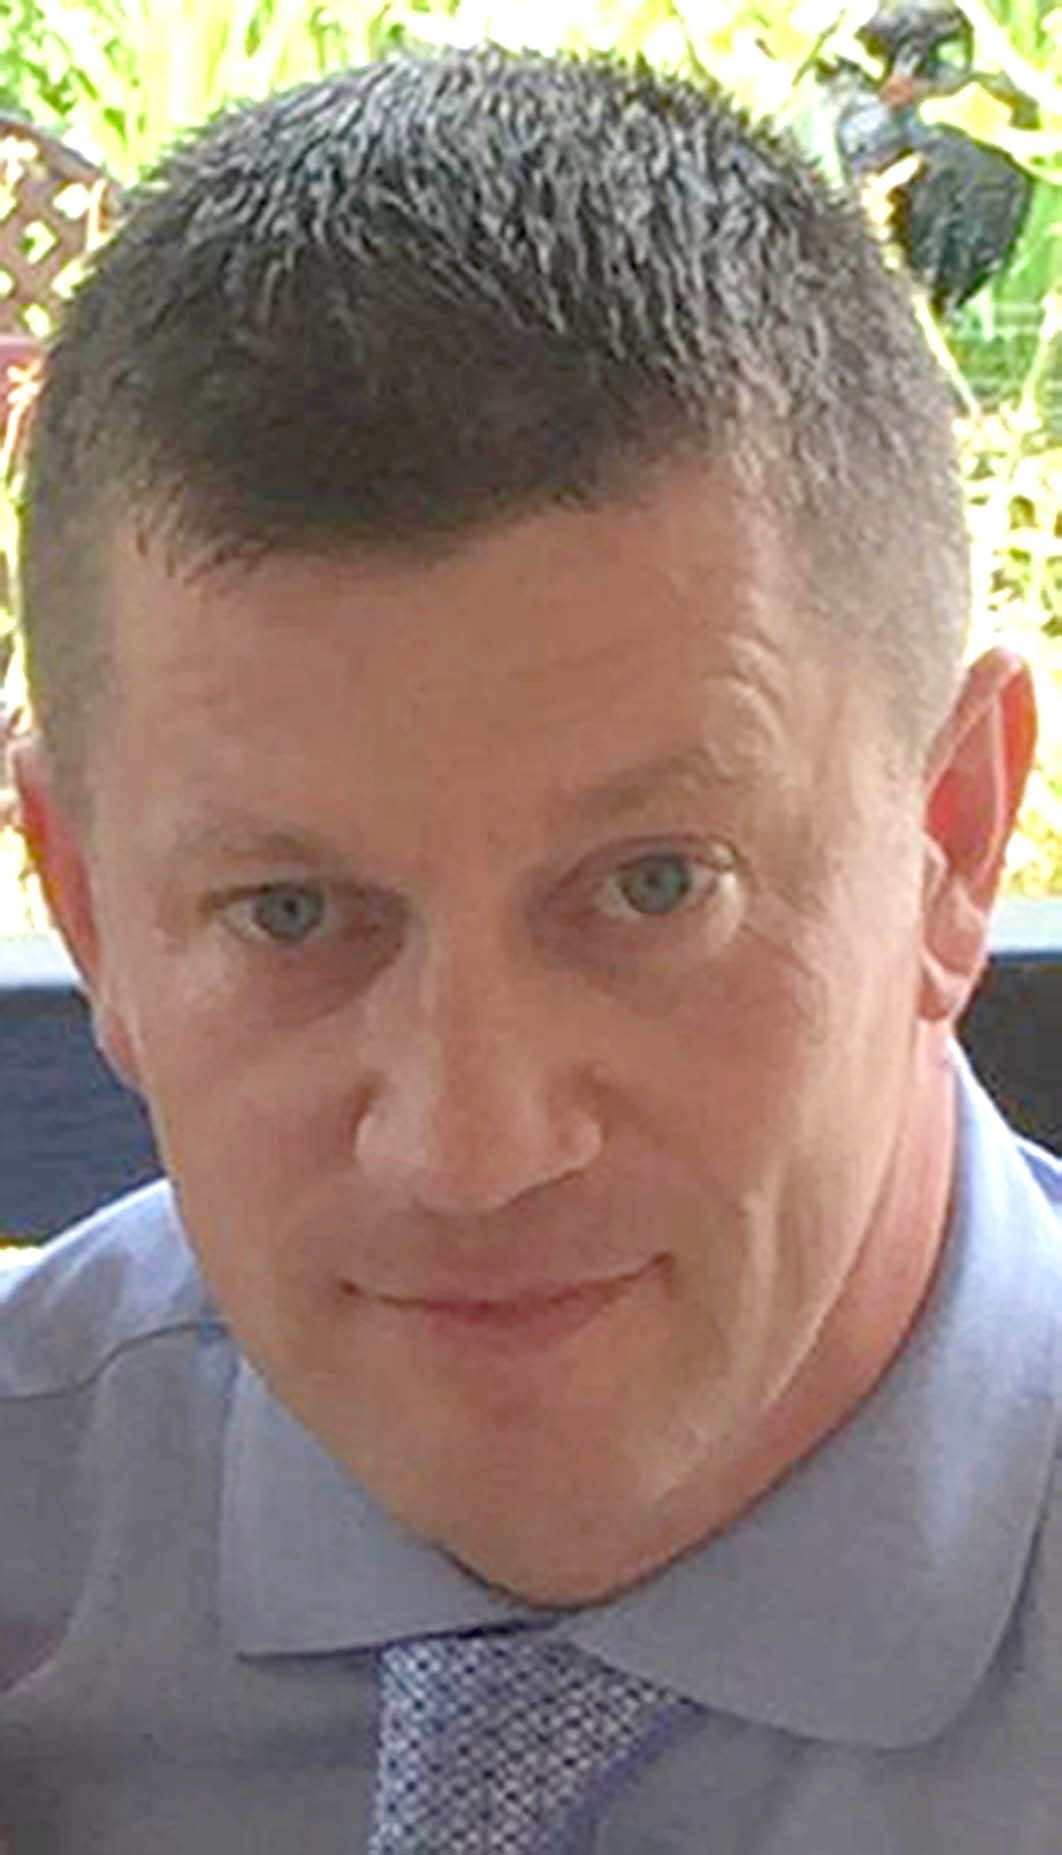 The body of murdered PC Keith Palmer will lie chapel in the Palace of Westminster before his funeral...